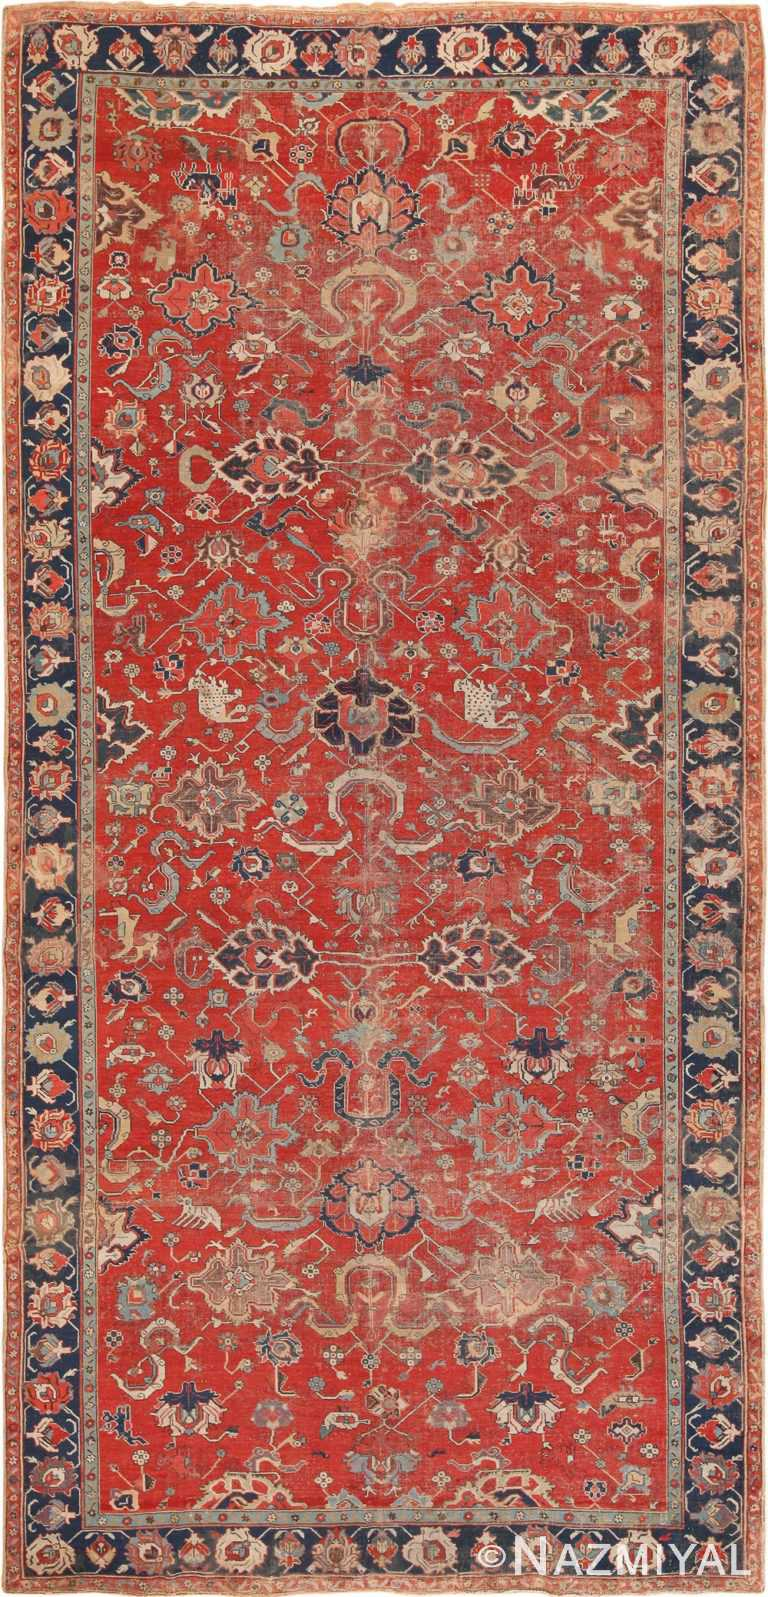 Full antique 17th century Northwest Persian Animal Rug 70215 by Nazmiyal